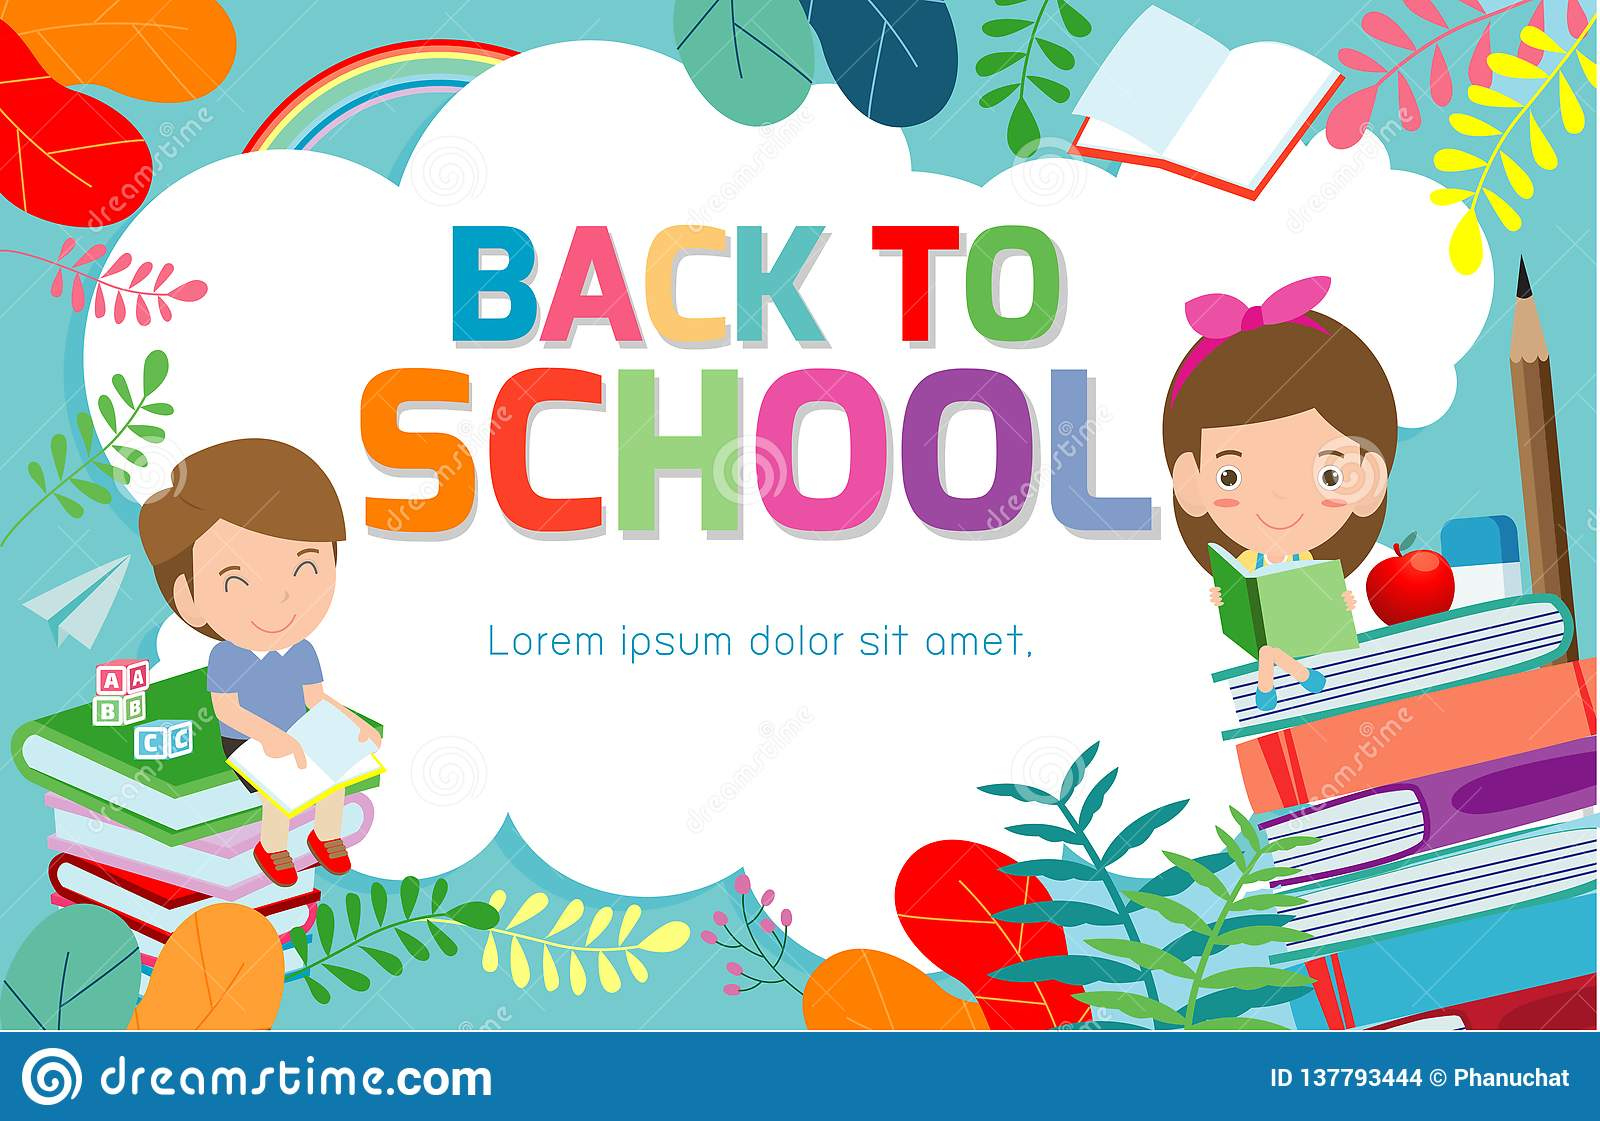 Back To School Banner Background Welcome Back To School Children Reading Book Cute School Kids Education Concept Stock Vector Illustration Of Advertising Crayon 137793444